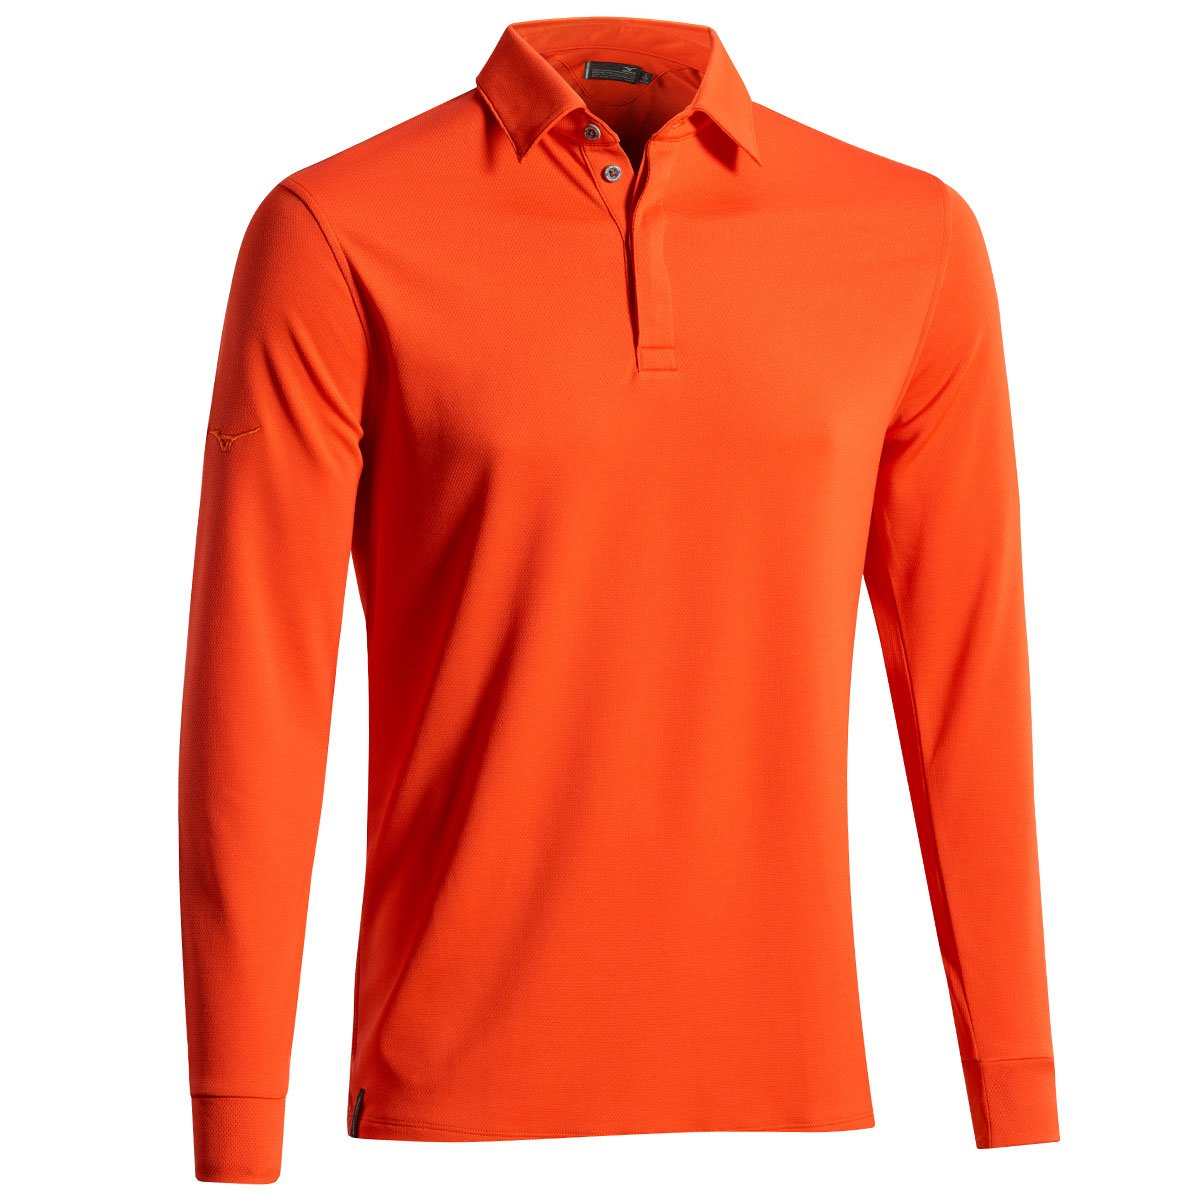 Uomo Breath Thermo Long Sleeve Mizuno Maglia Termica Breath a Maniche Lunghe